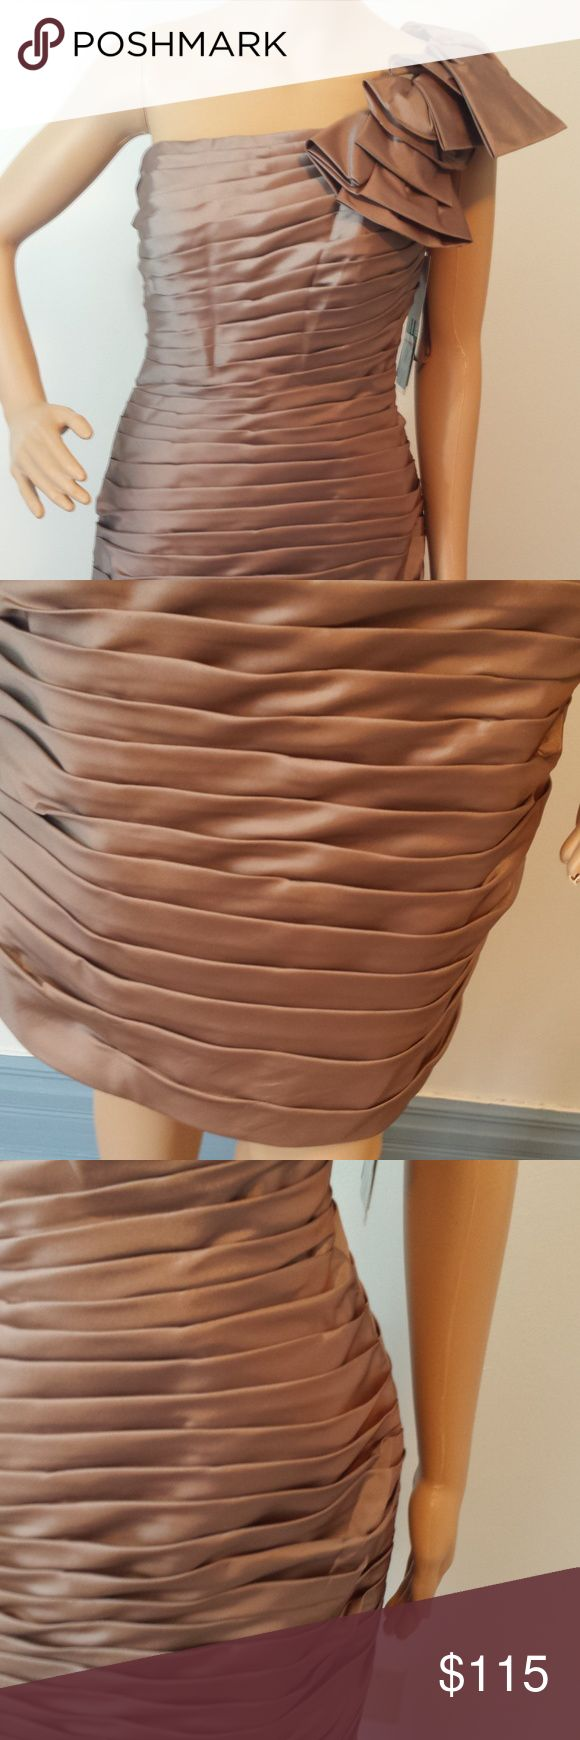 """Mari Lee Knee Length Neutral Prom Formal Dress A few wrinkles (photo 3).  Great condition otherwise.  37"""" total length. Mari Lee by Madeline Gardner. Mari Lee Dresses"""